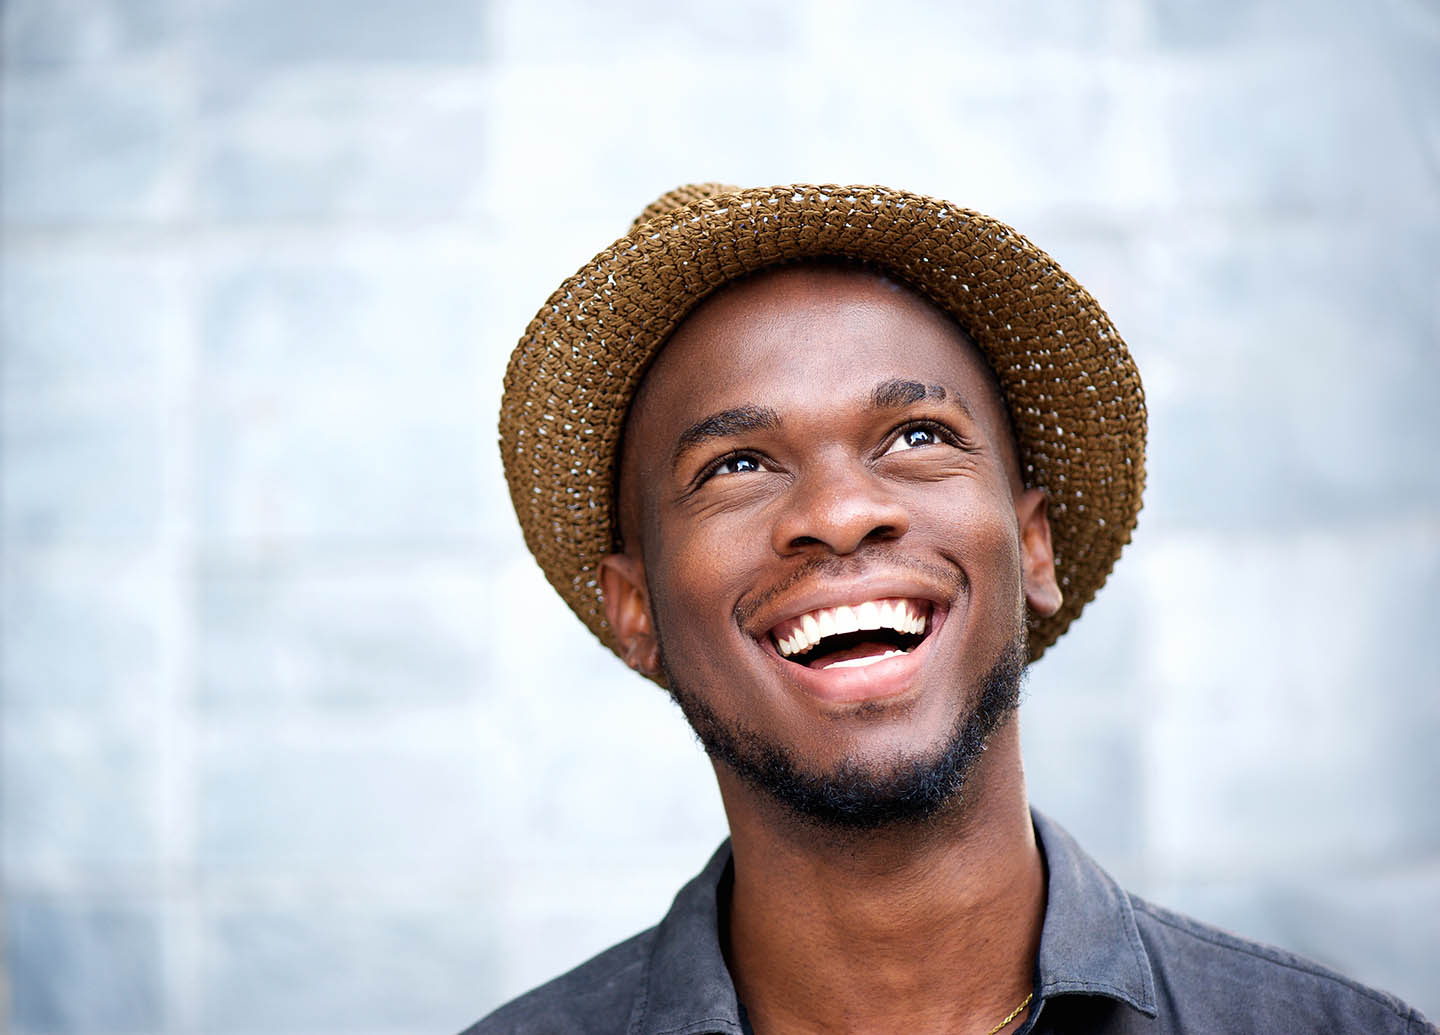 smiling man with hat